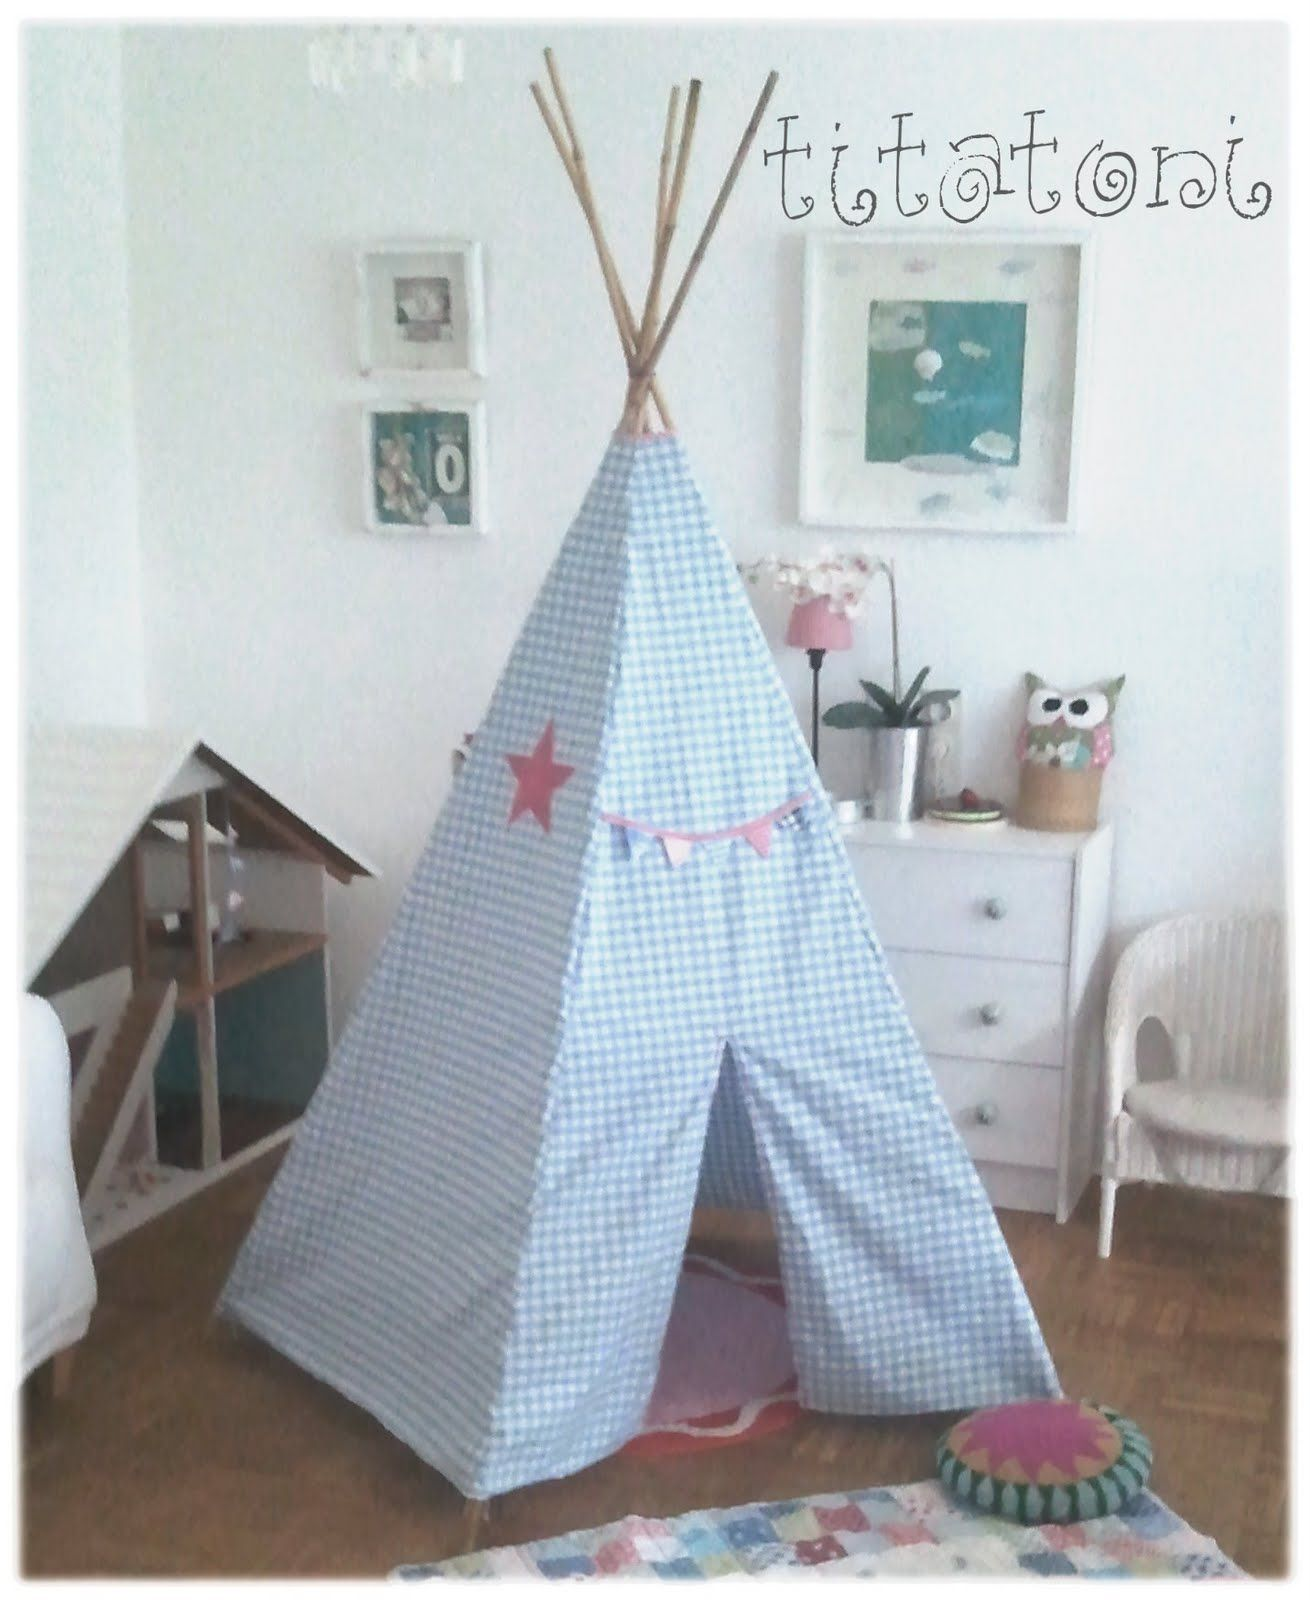 Titatoni Diy Suchergebnisse Fur Tipi 01 Sewing Pinterest